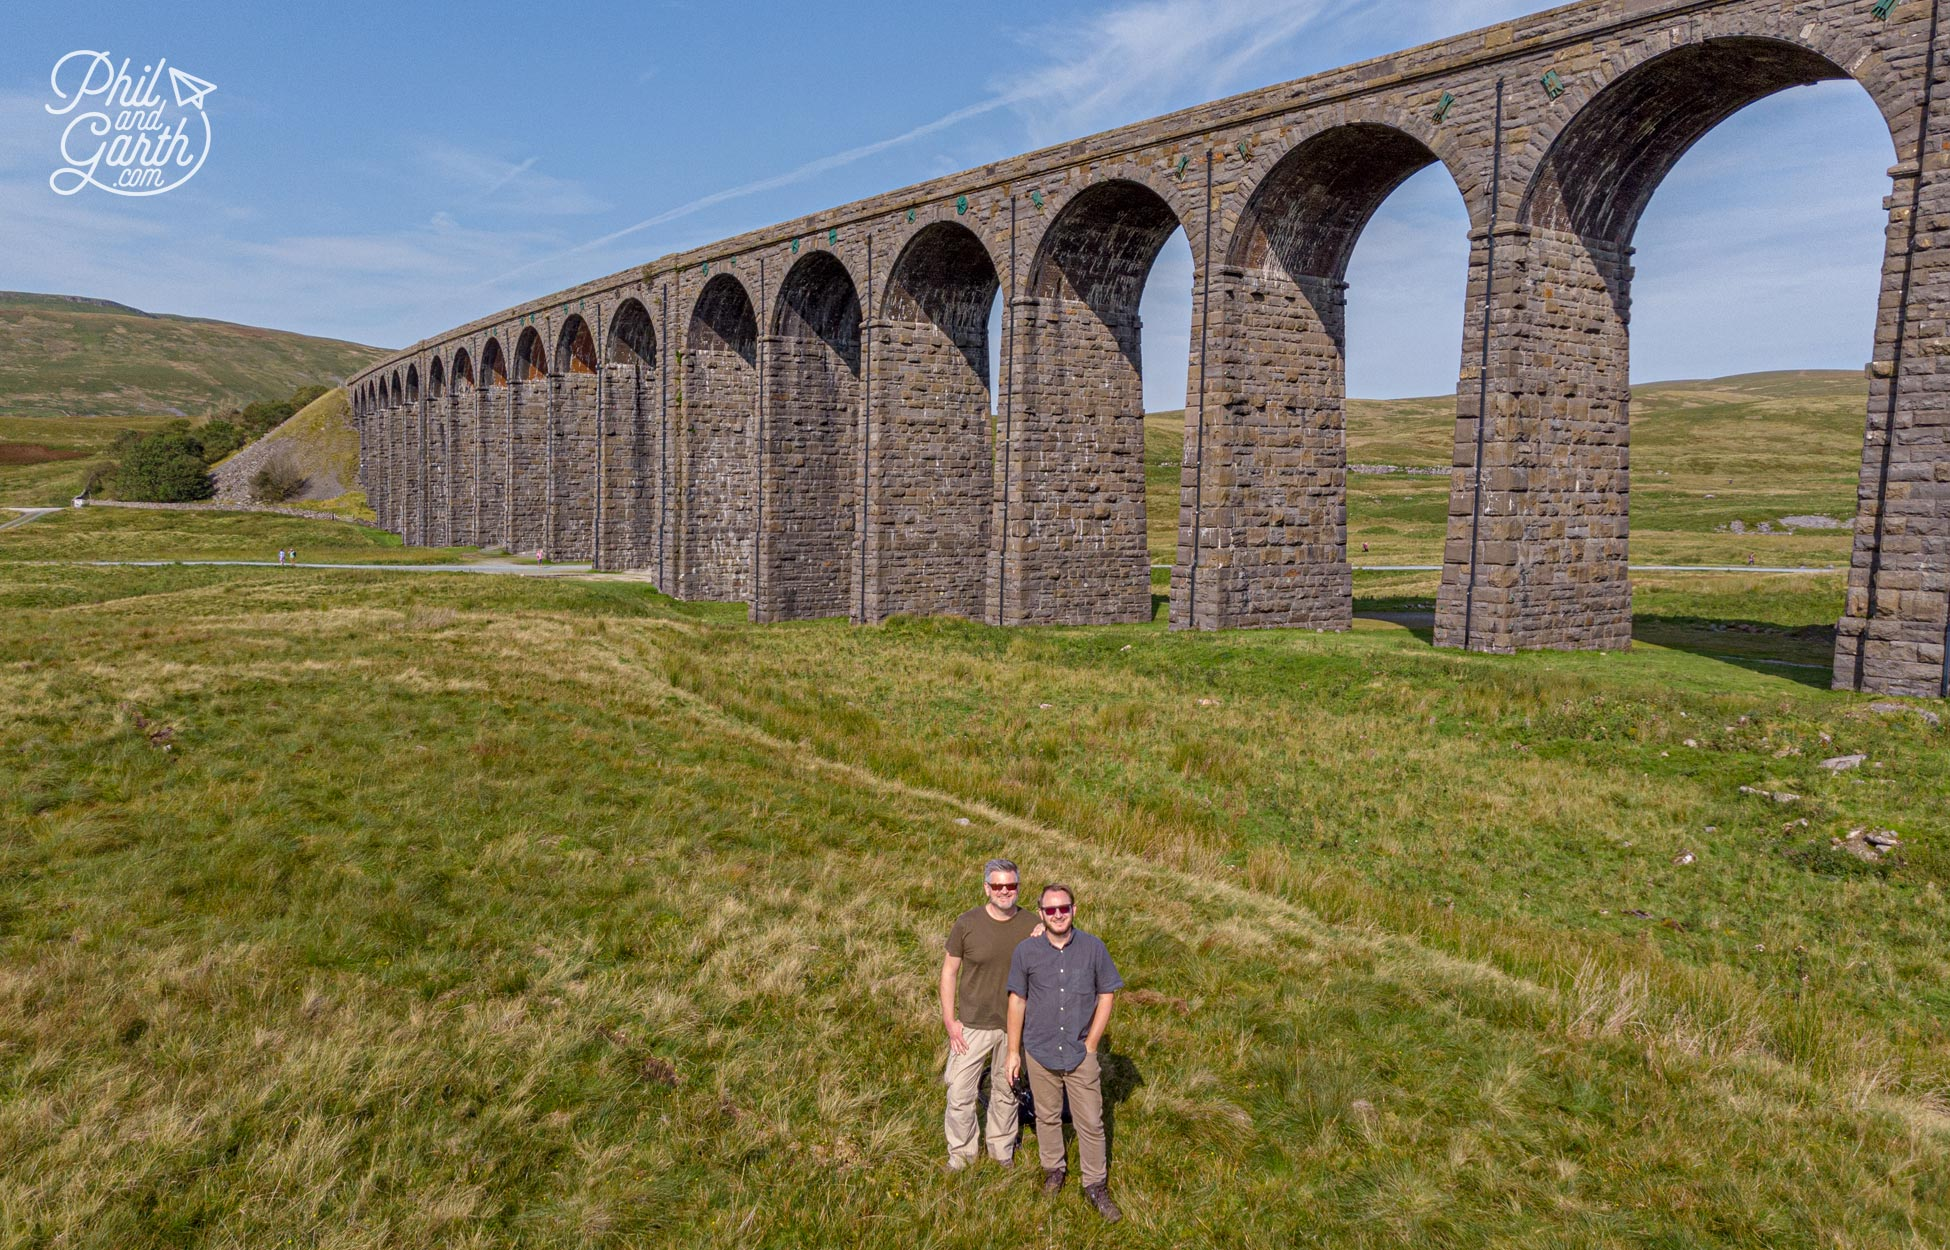 24 huge stone arches make up the Ribblehead Viaduct, completed in 1875